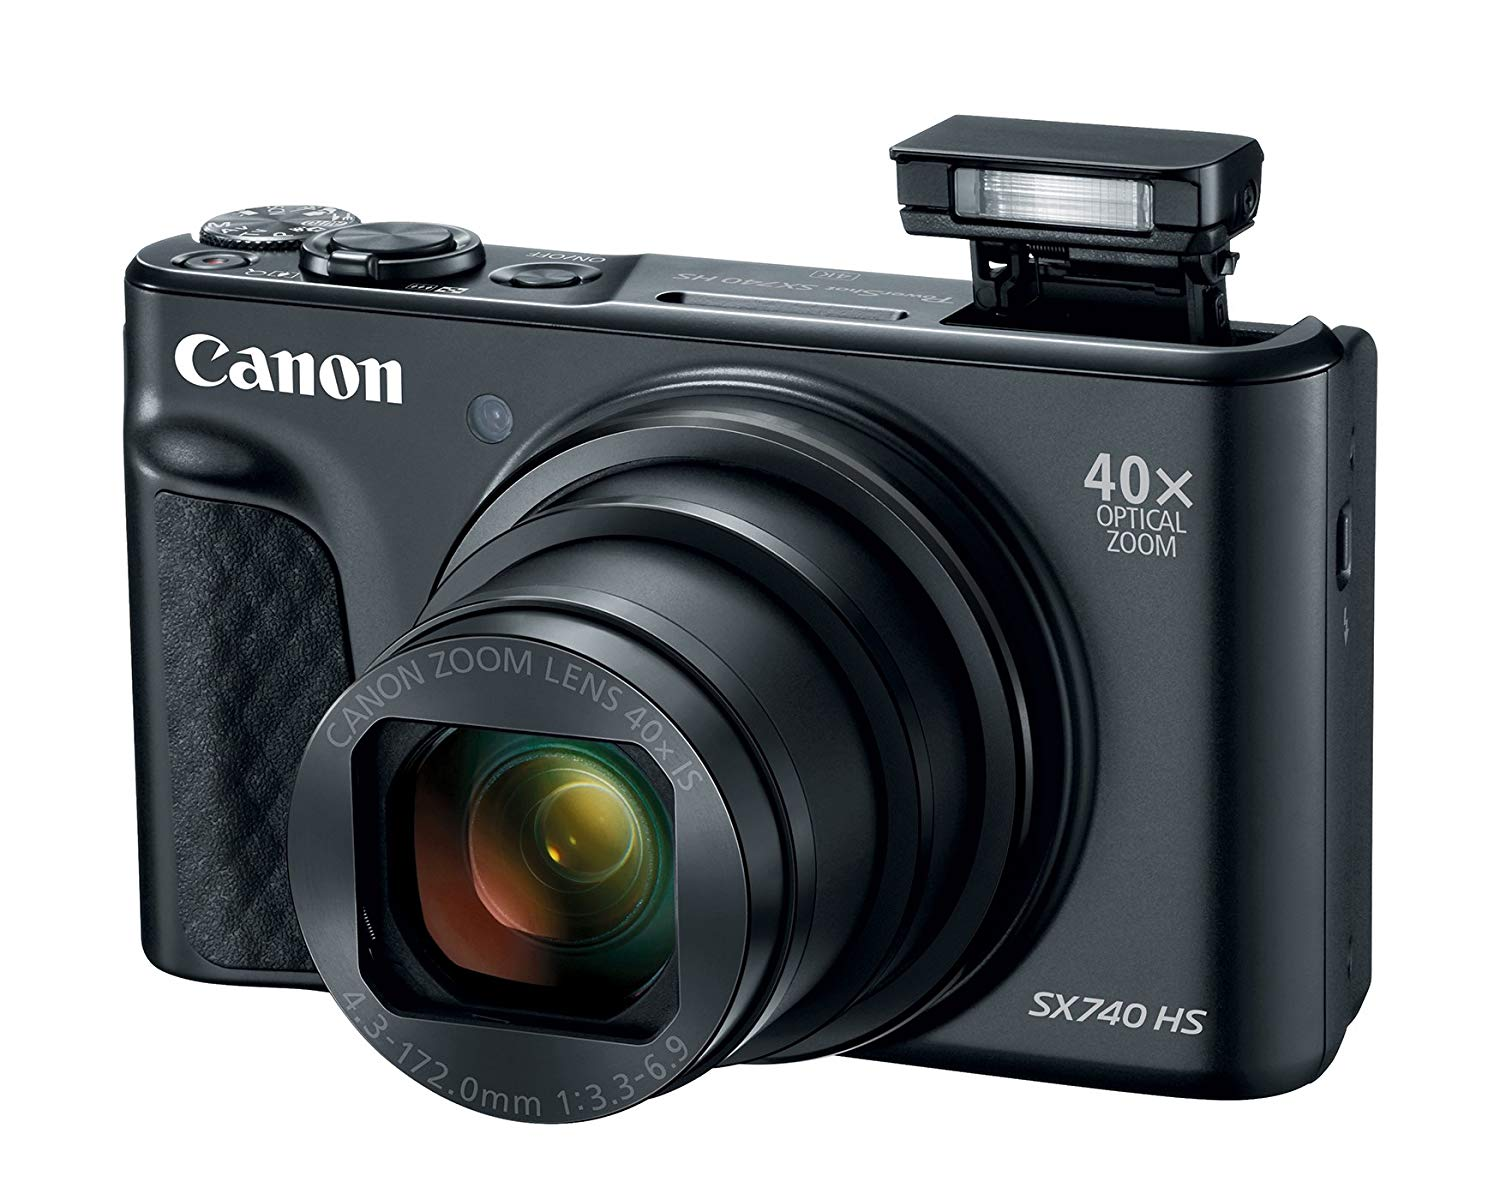 https://www.amazon.com/Canon-PowerShot-Digital-Camera-Optical/dp/B07FXXVC74/ref=sr_1_5?keywords=Black+canon+point+and+shoot+camera&qid=1557193021&s=gateway&sr=8-5